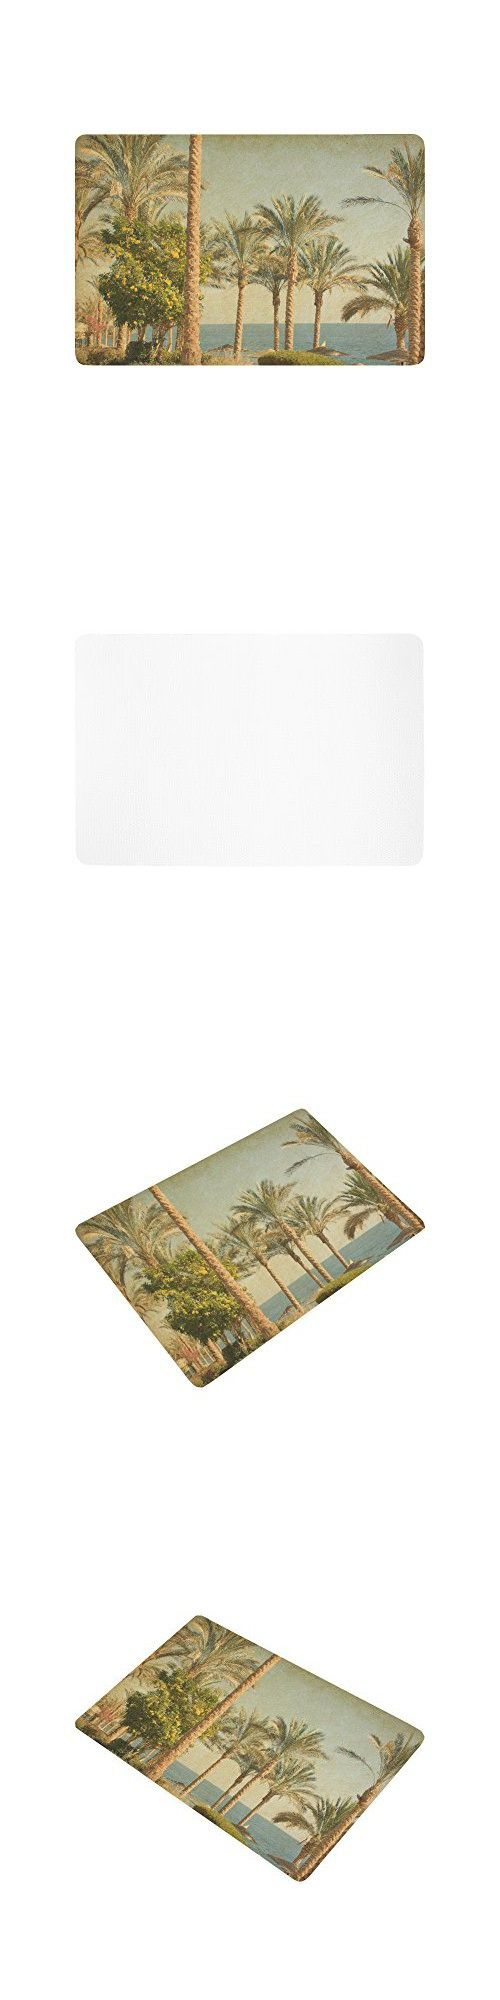 InterestPrint Nature Anti-slip Door Mat Home Decor, Vintage Retro Beach with Palm Trees amid the Blue Sea and Sky Indoor Outdoor Entrance Doormat Rubber Backing 23.6 X 15.7 Inches